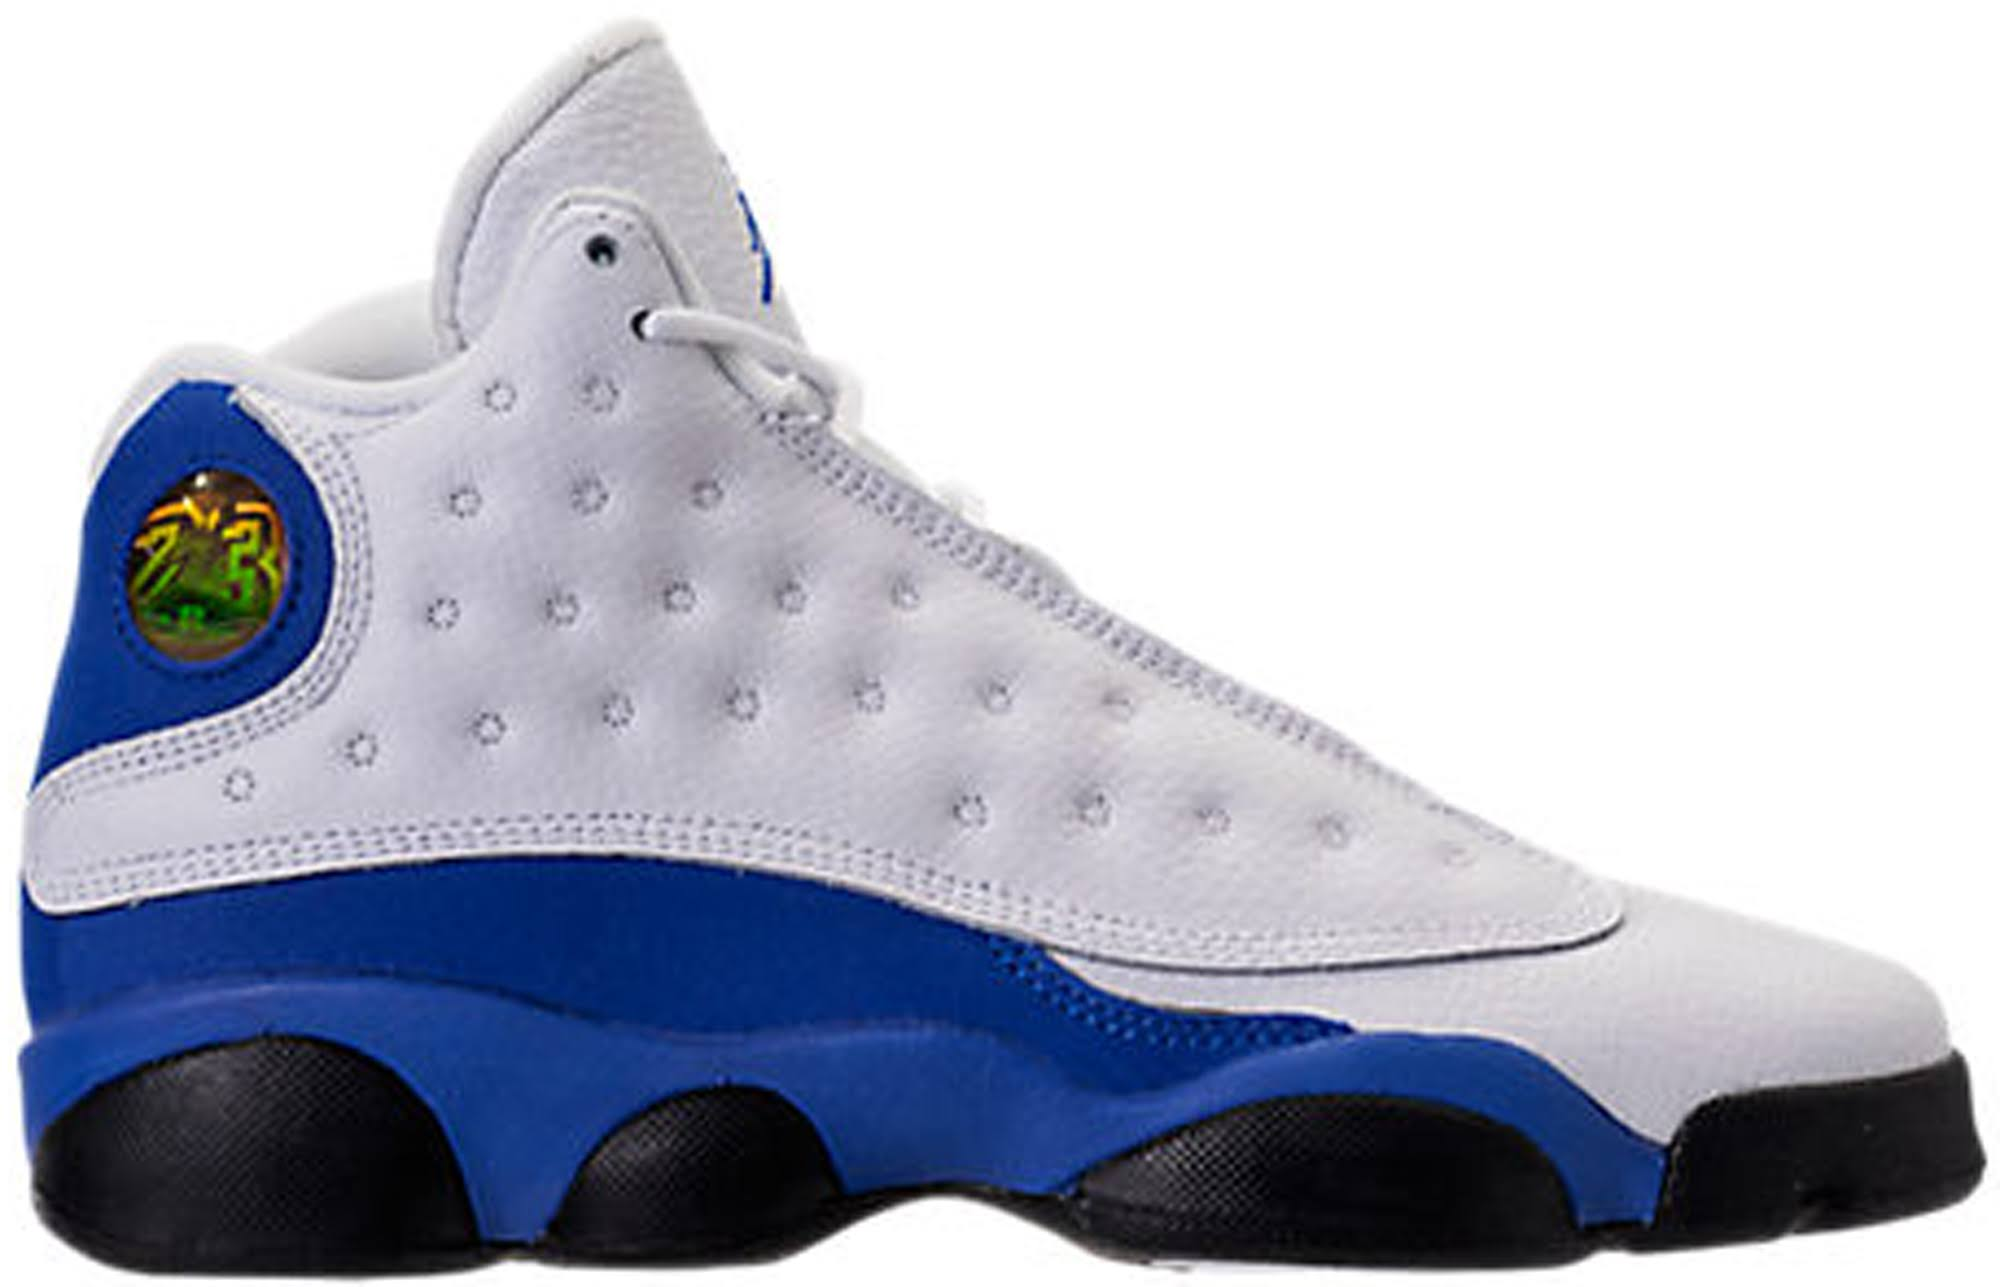 Royal Jordan White Retro 13 Hyper gs Black rwqwCIf